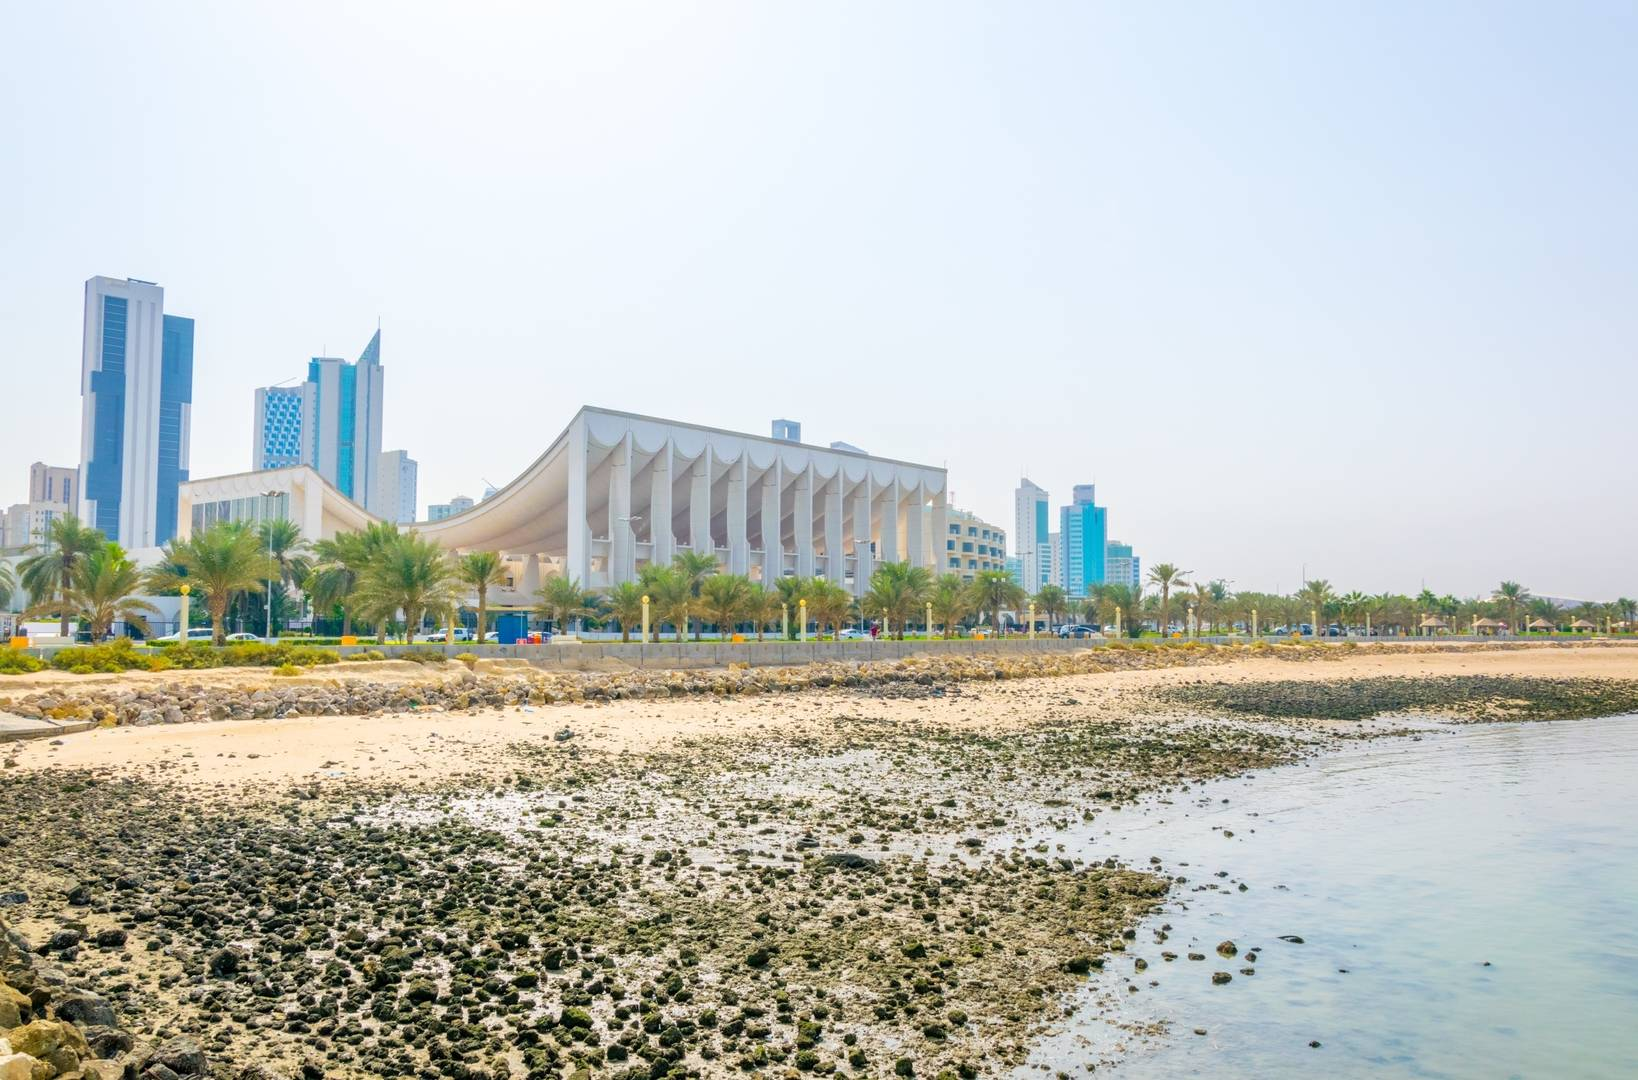 National Assembly Building in Kuwait